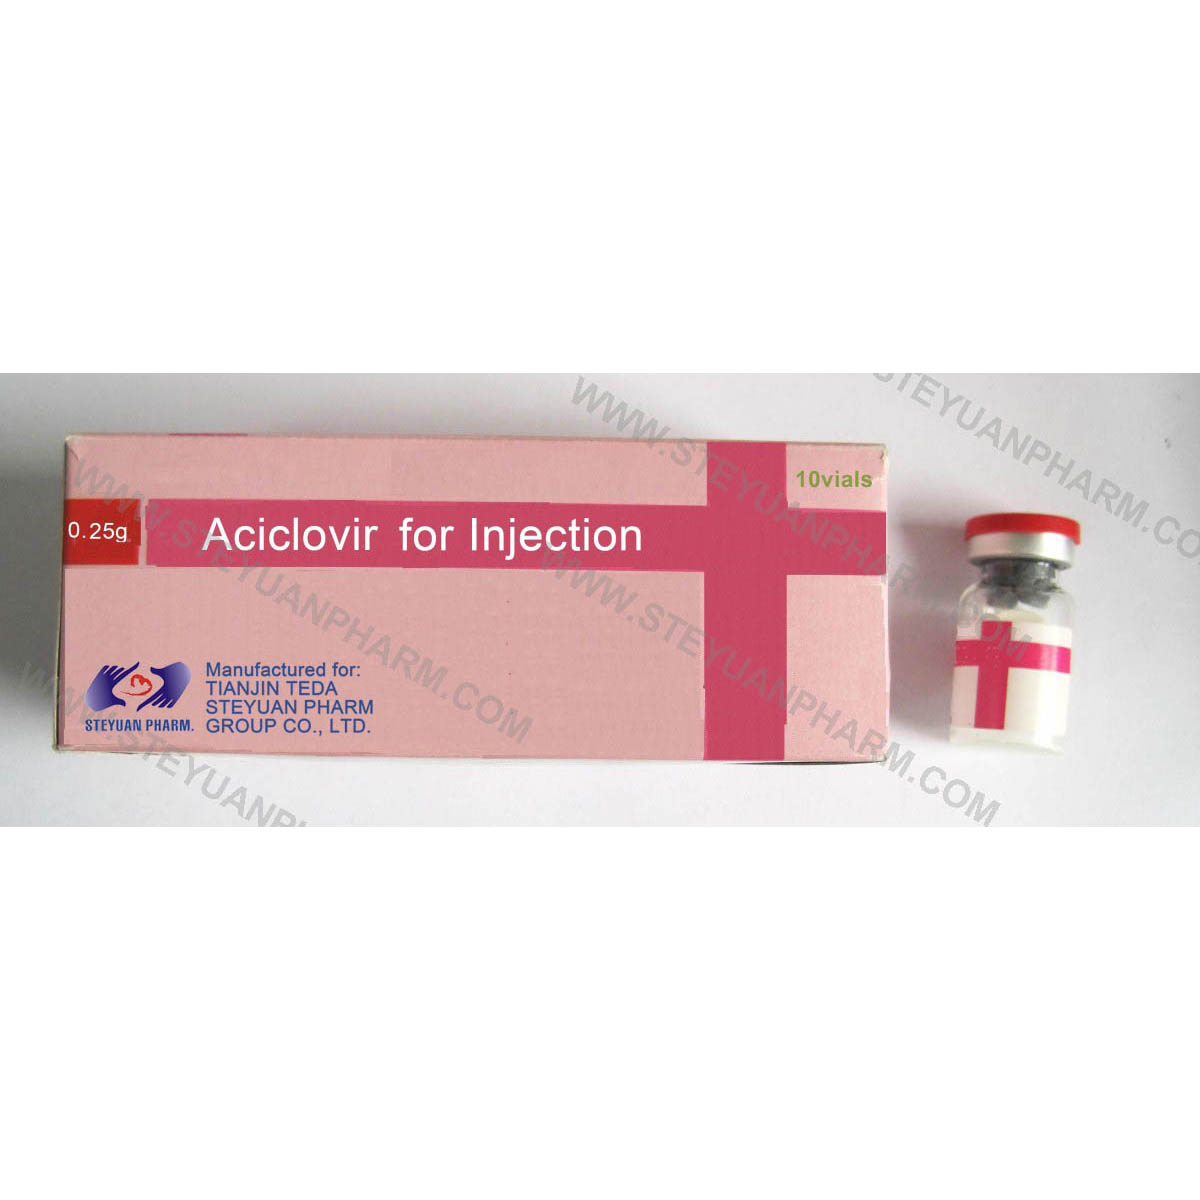 Zovirax 400 dosage.doc -  Cs 21 Barrier Genital Gel Compared To Topical Aciclovir And Placebo In Symptoms Of Genital Herpes Titre Du Document Document Title Antiviral Effects